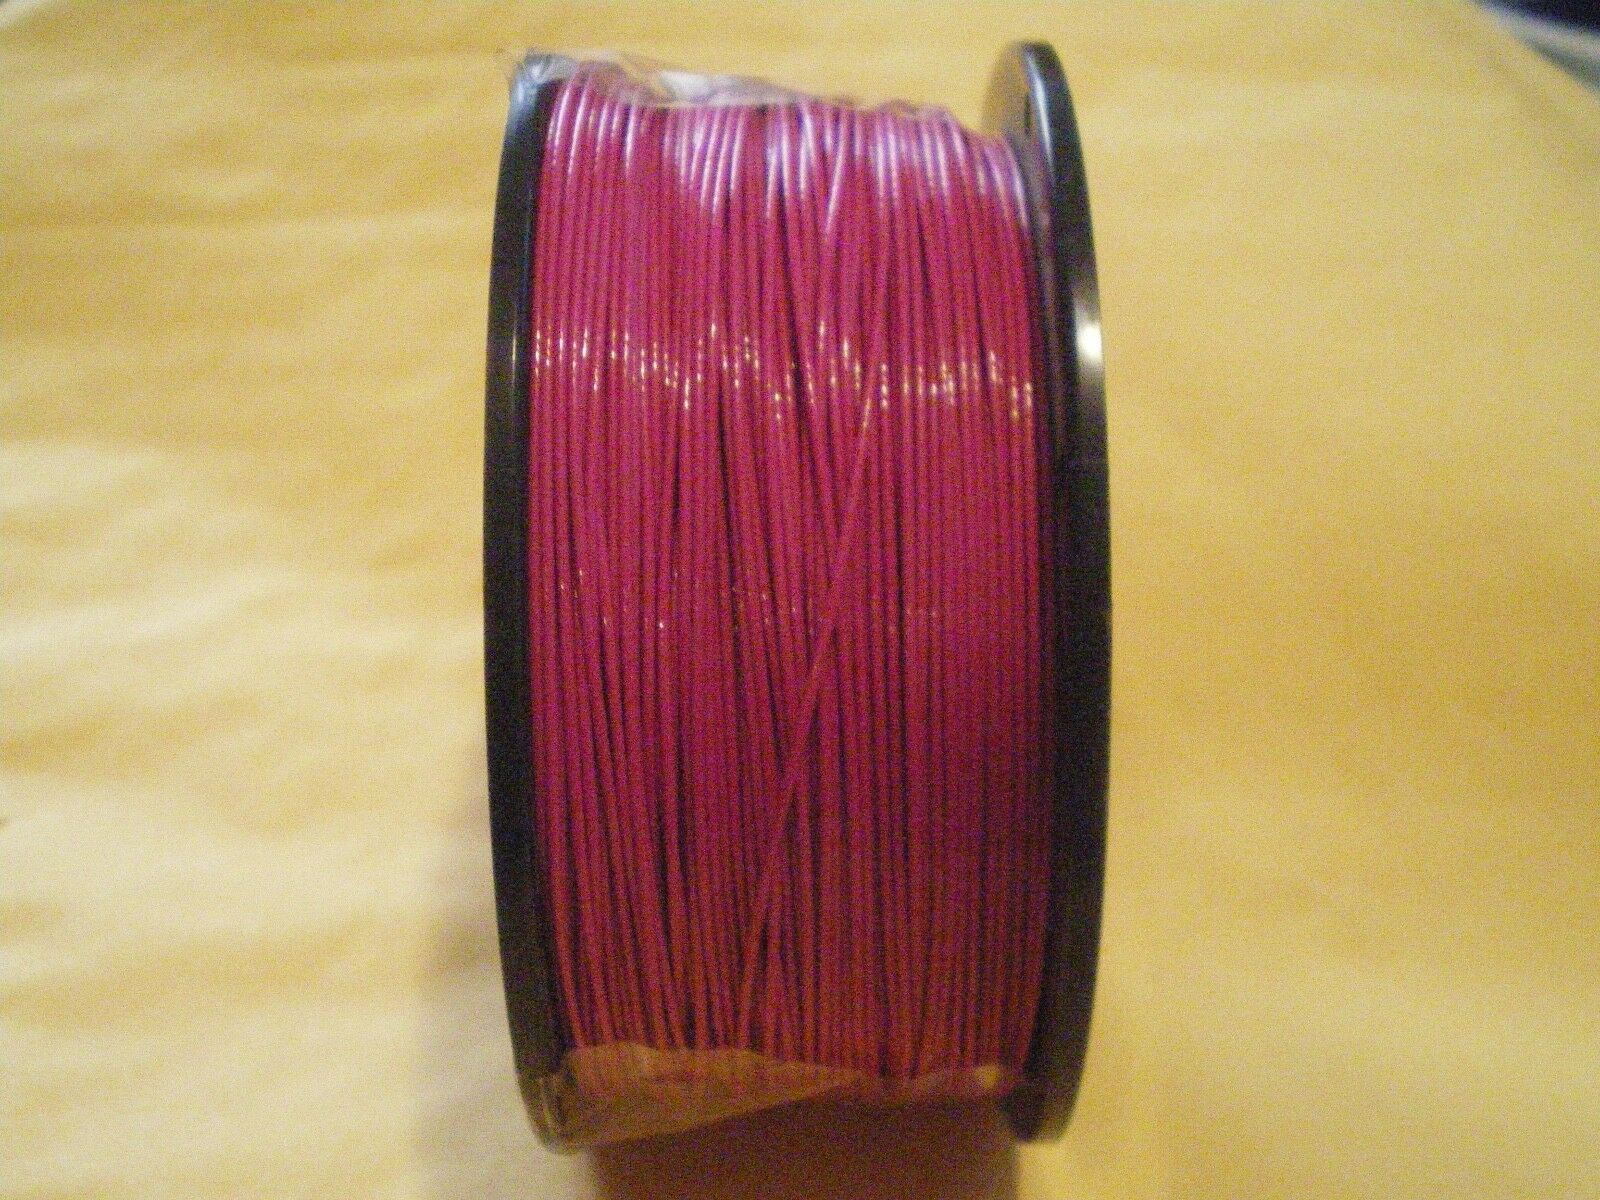 STAINLESS S. LIGHT-RED WIRE LEADER 300 FEET, 90 LBS TEST 1X7 STRAND+100 SLEEVES